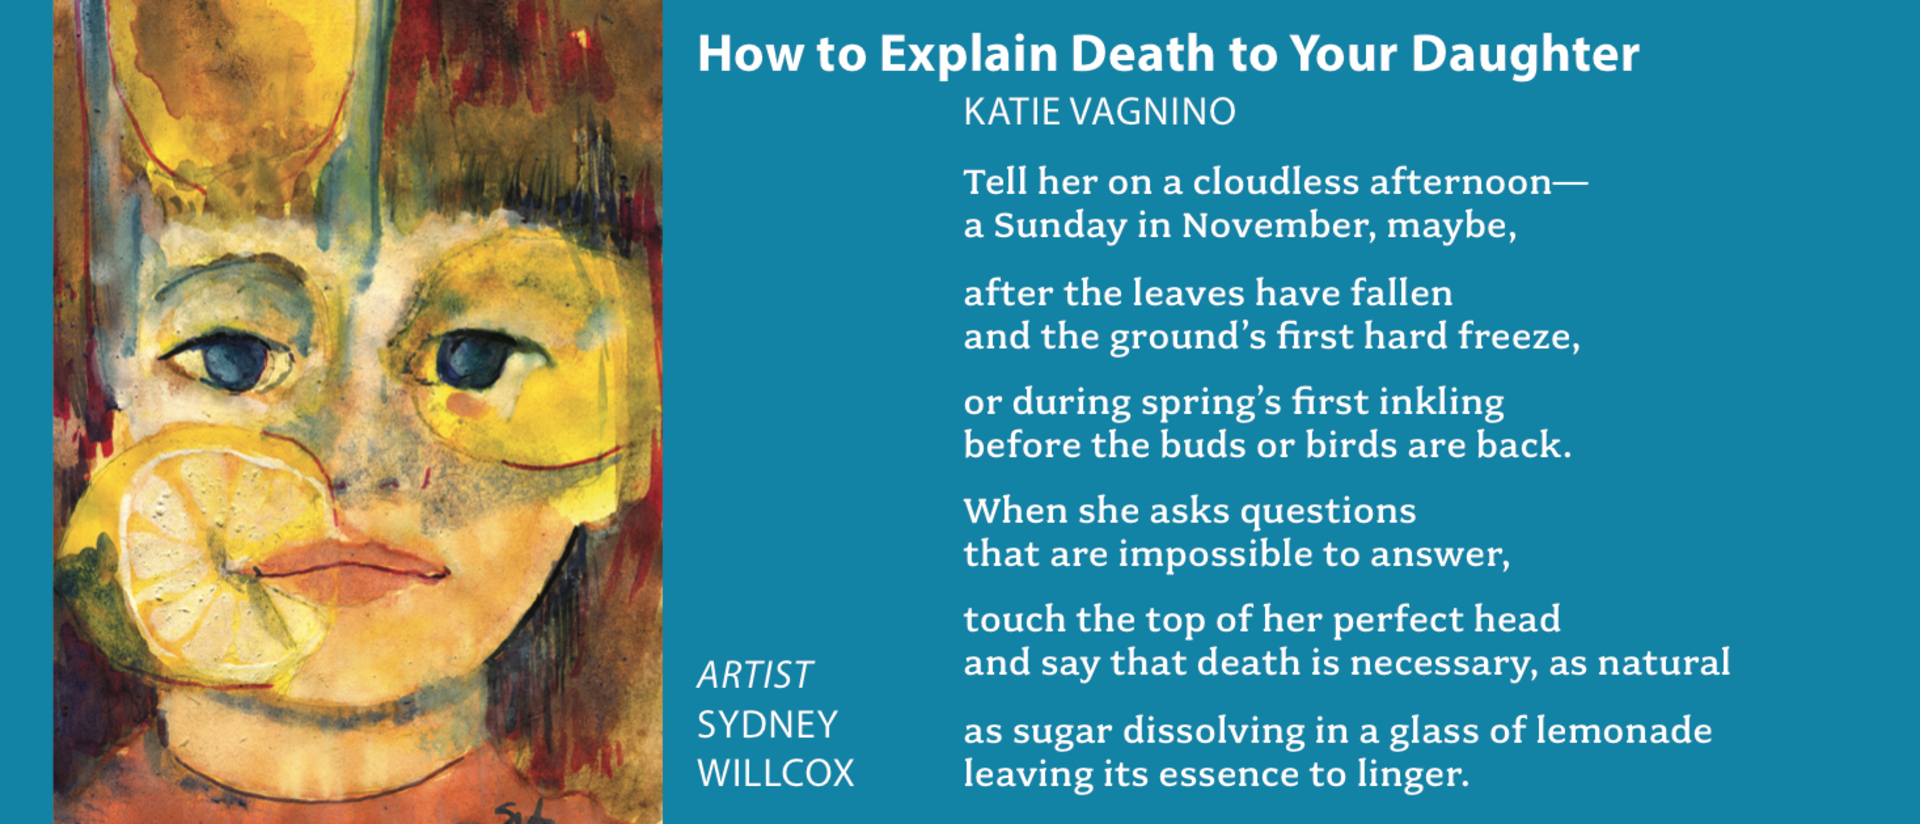 How to Explain Death to Your Daughter Poem